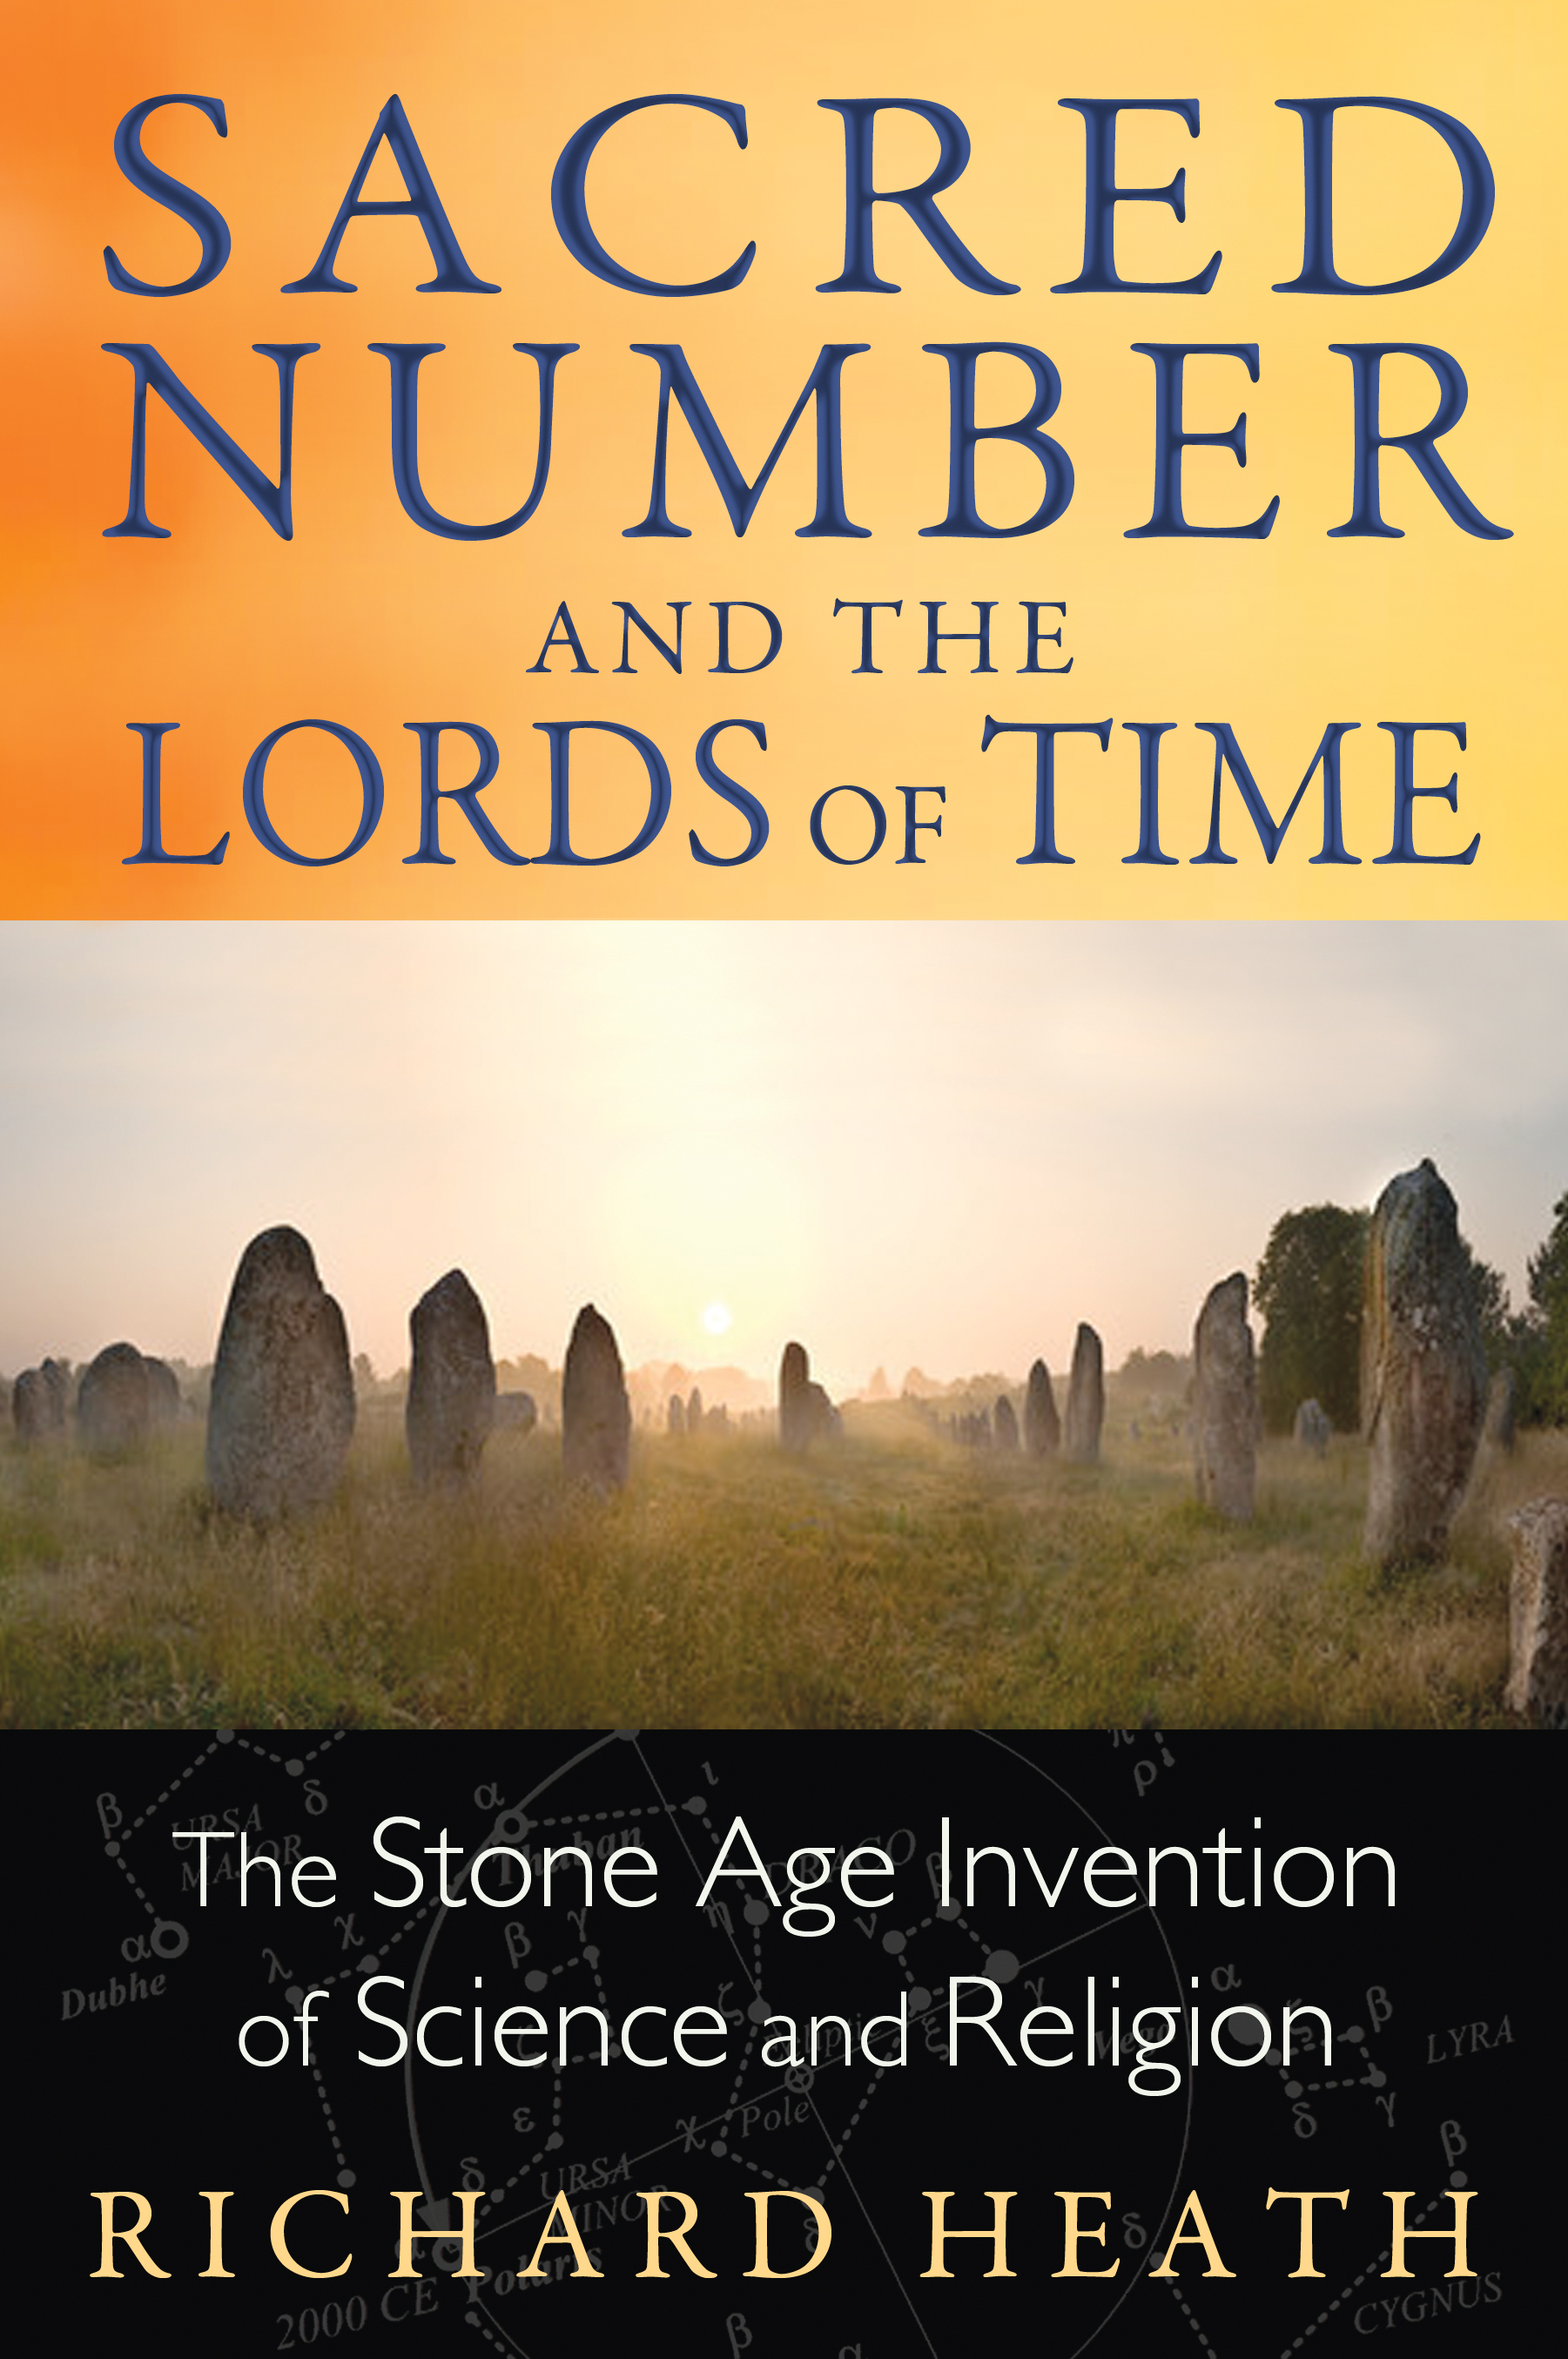 Sacred-number-and-the-lords-of-time-9781620552445_hr